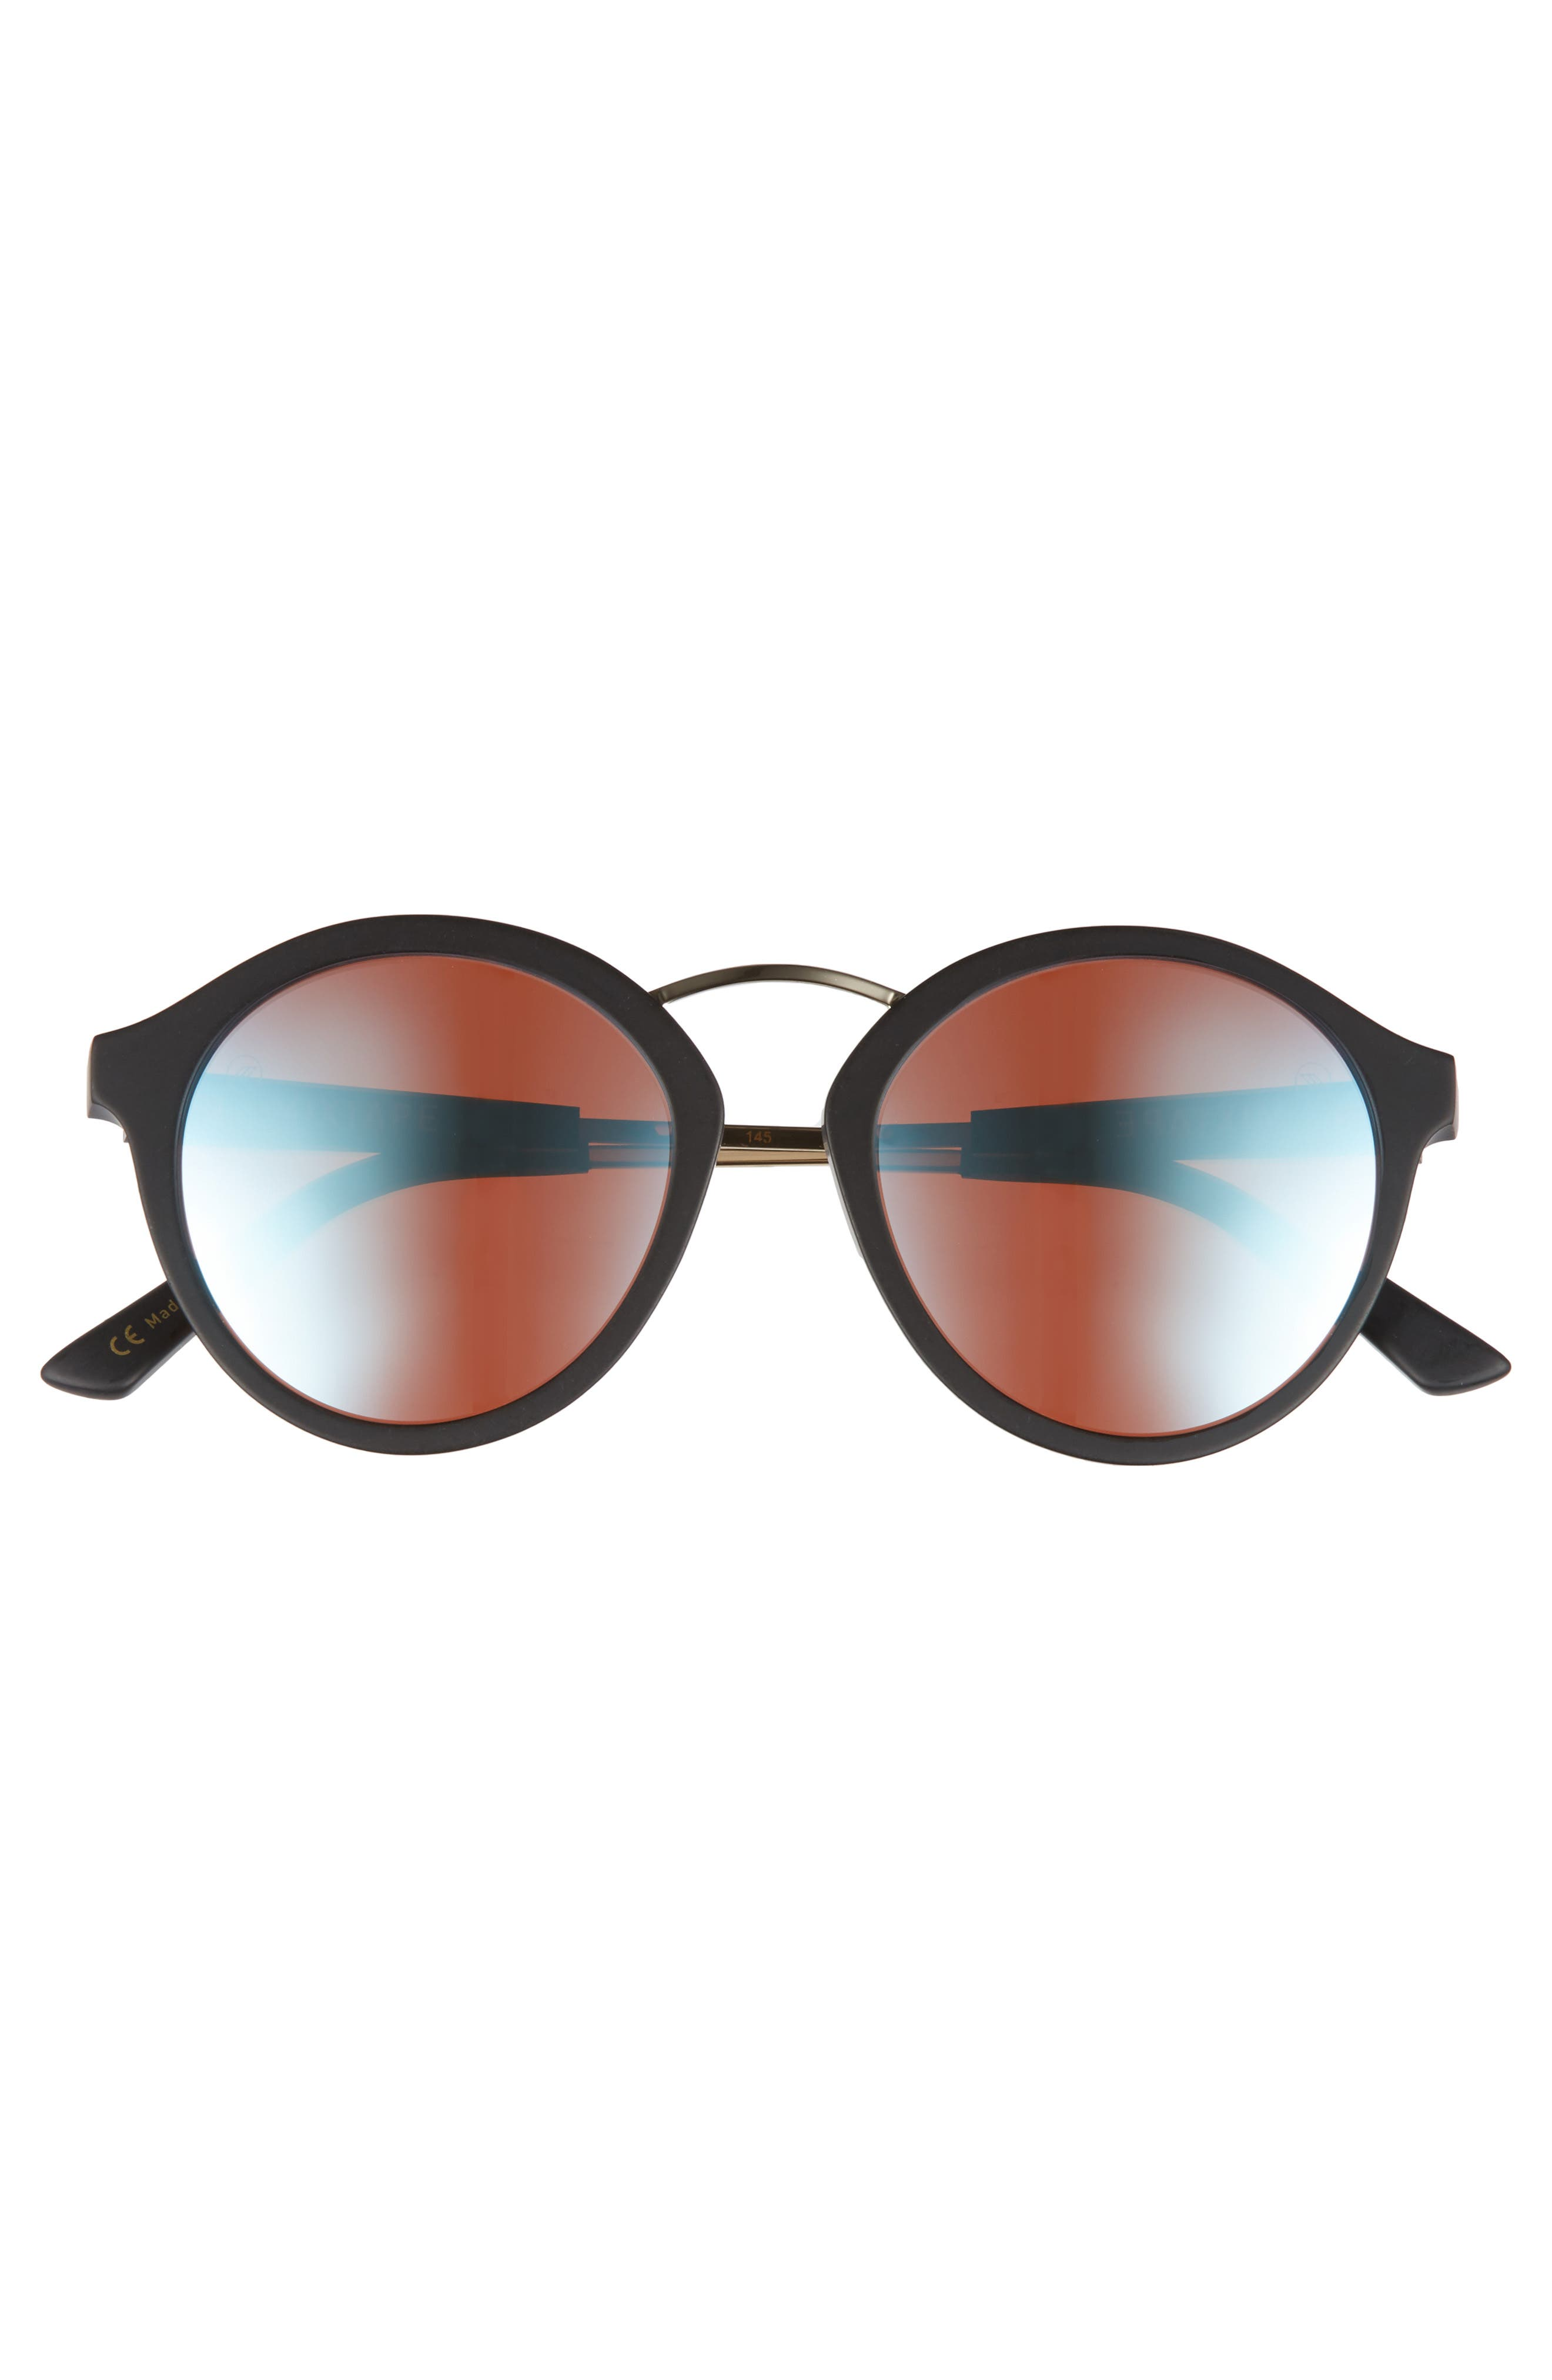 Mix Tape 52mm Mirrored Round Sunglasses,                             Alternate thumbnail 3, color,                             Matte Black/ Sky Blue Chrome